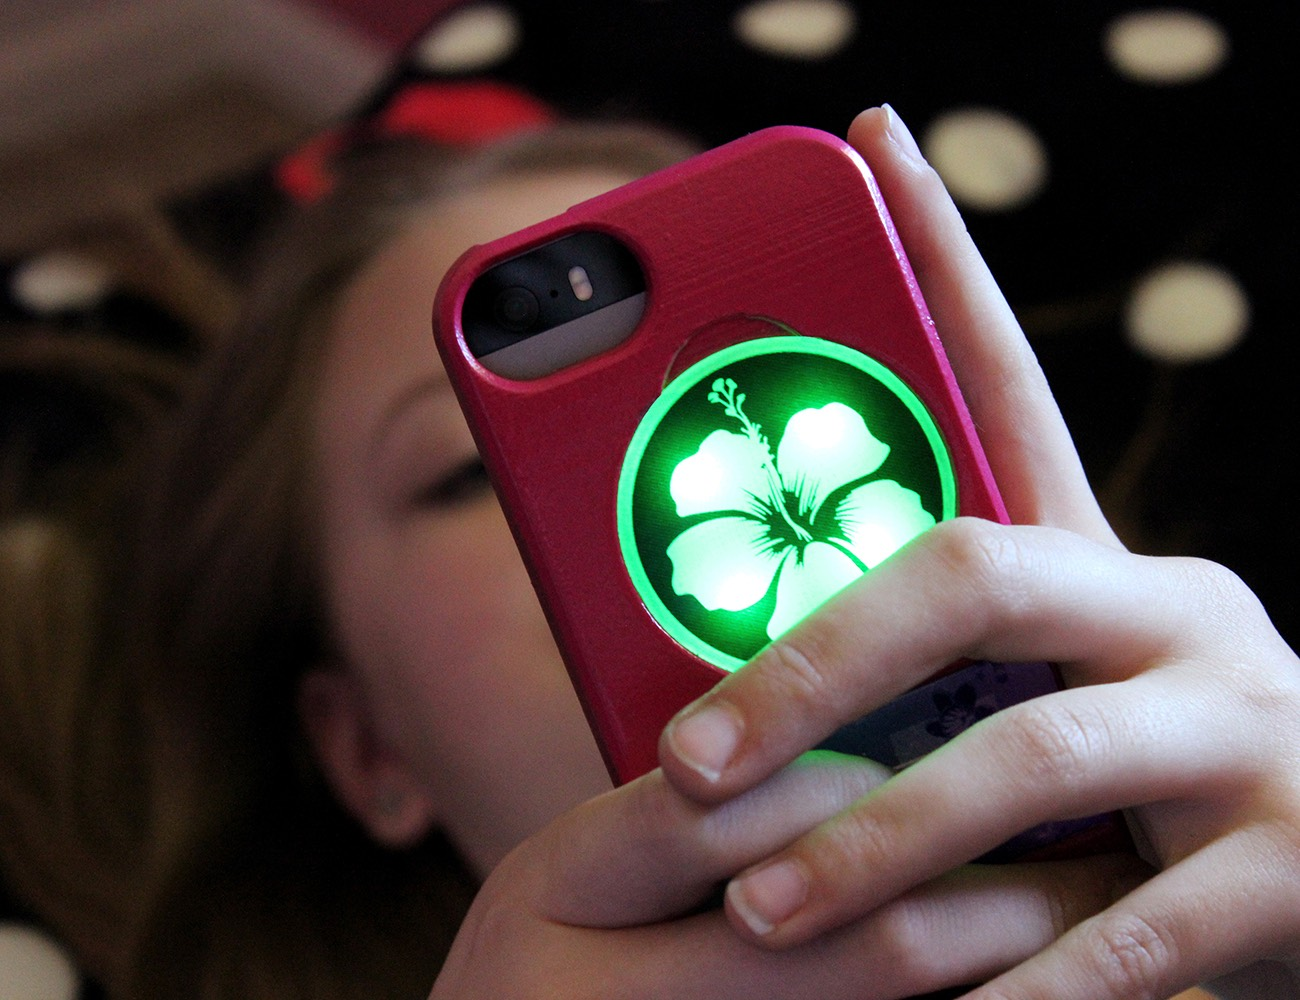 Illuminating iPhone Cases by Illumicase